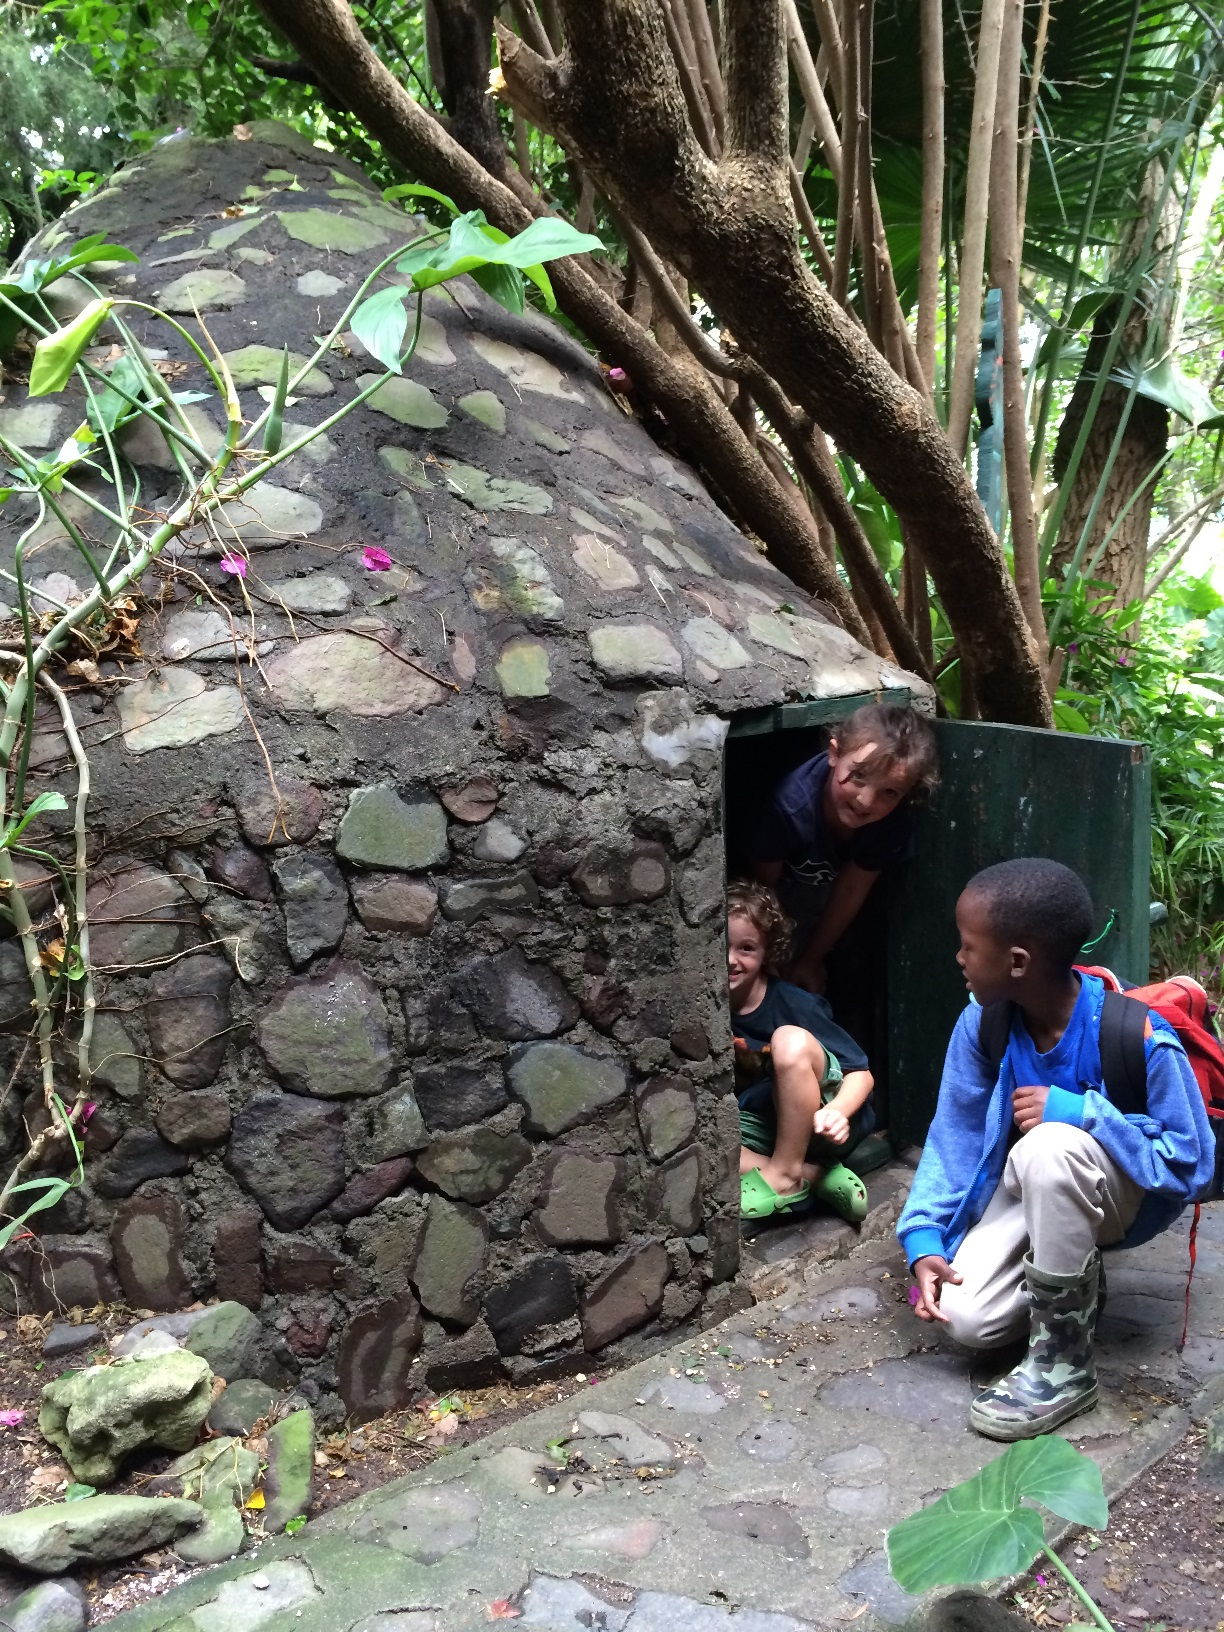 The Hobbit House at La Iguana. Guests are welcome to build a fire in the house and enjoy a traditional steam. The kids liked playing in it.